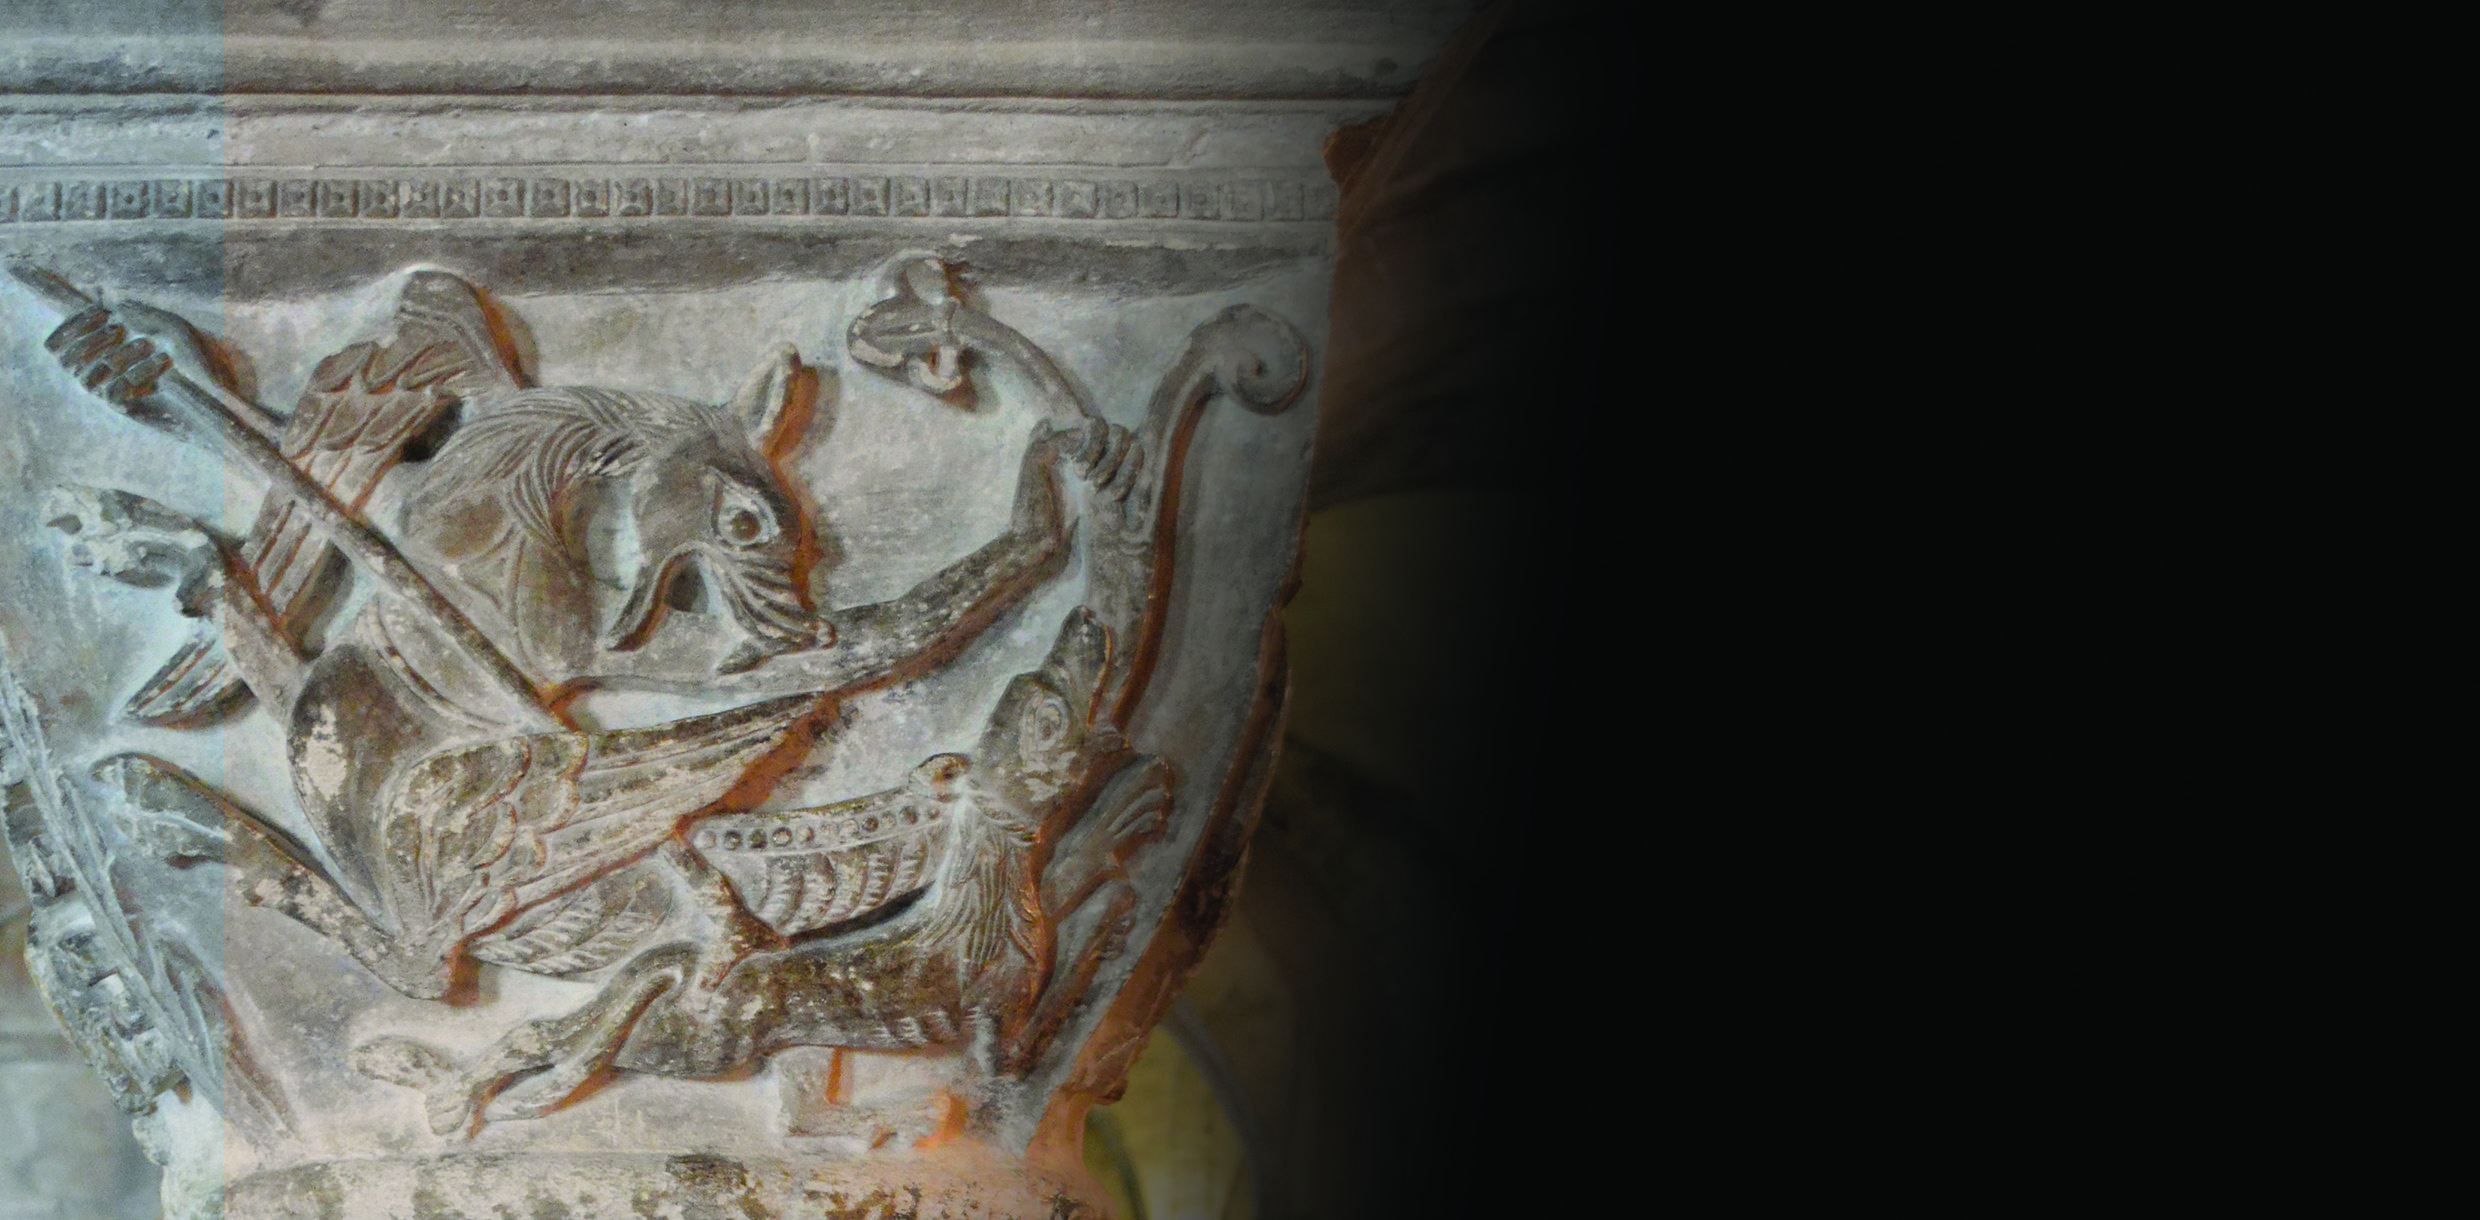 St Anselm's Crypt talk and tour